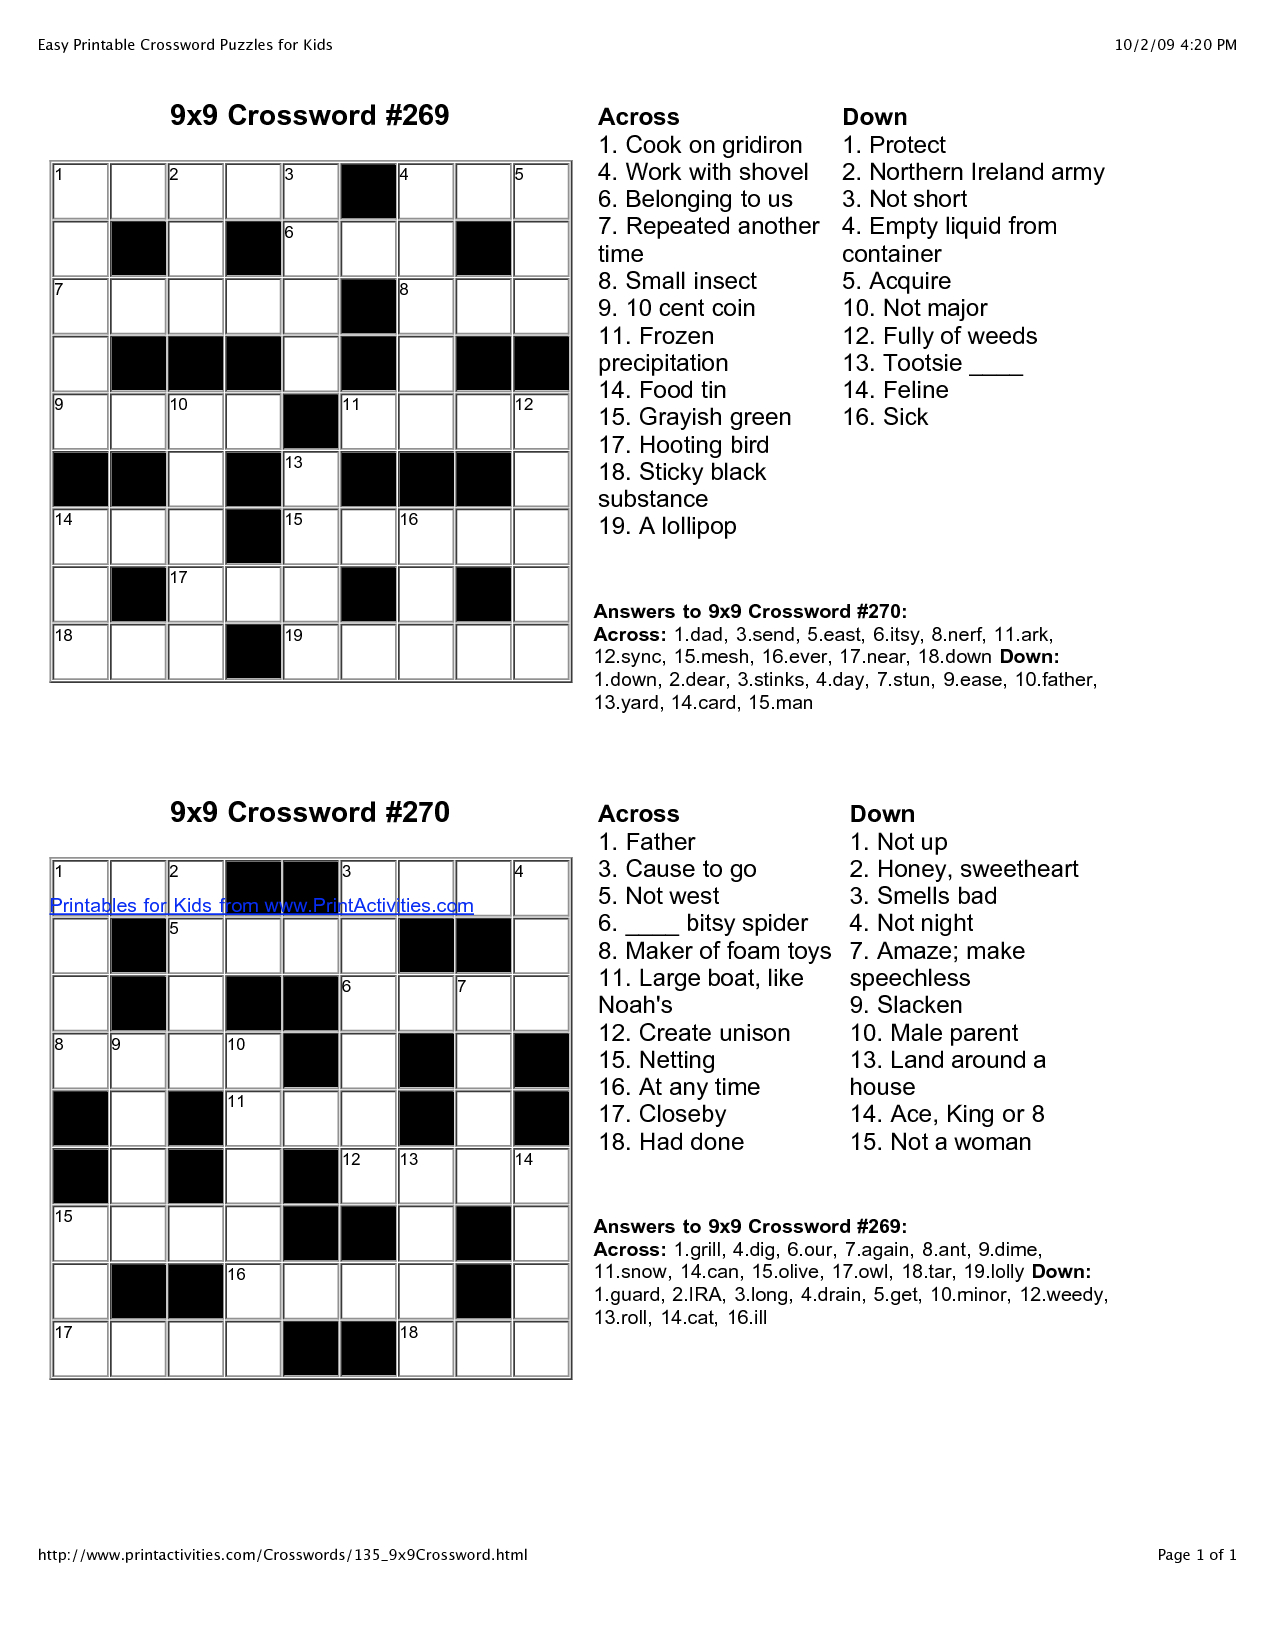 Easy Crossword Puzzles | I'm Going To Be An Slp! | Kids Crossword - Printable Crossword Clue